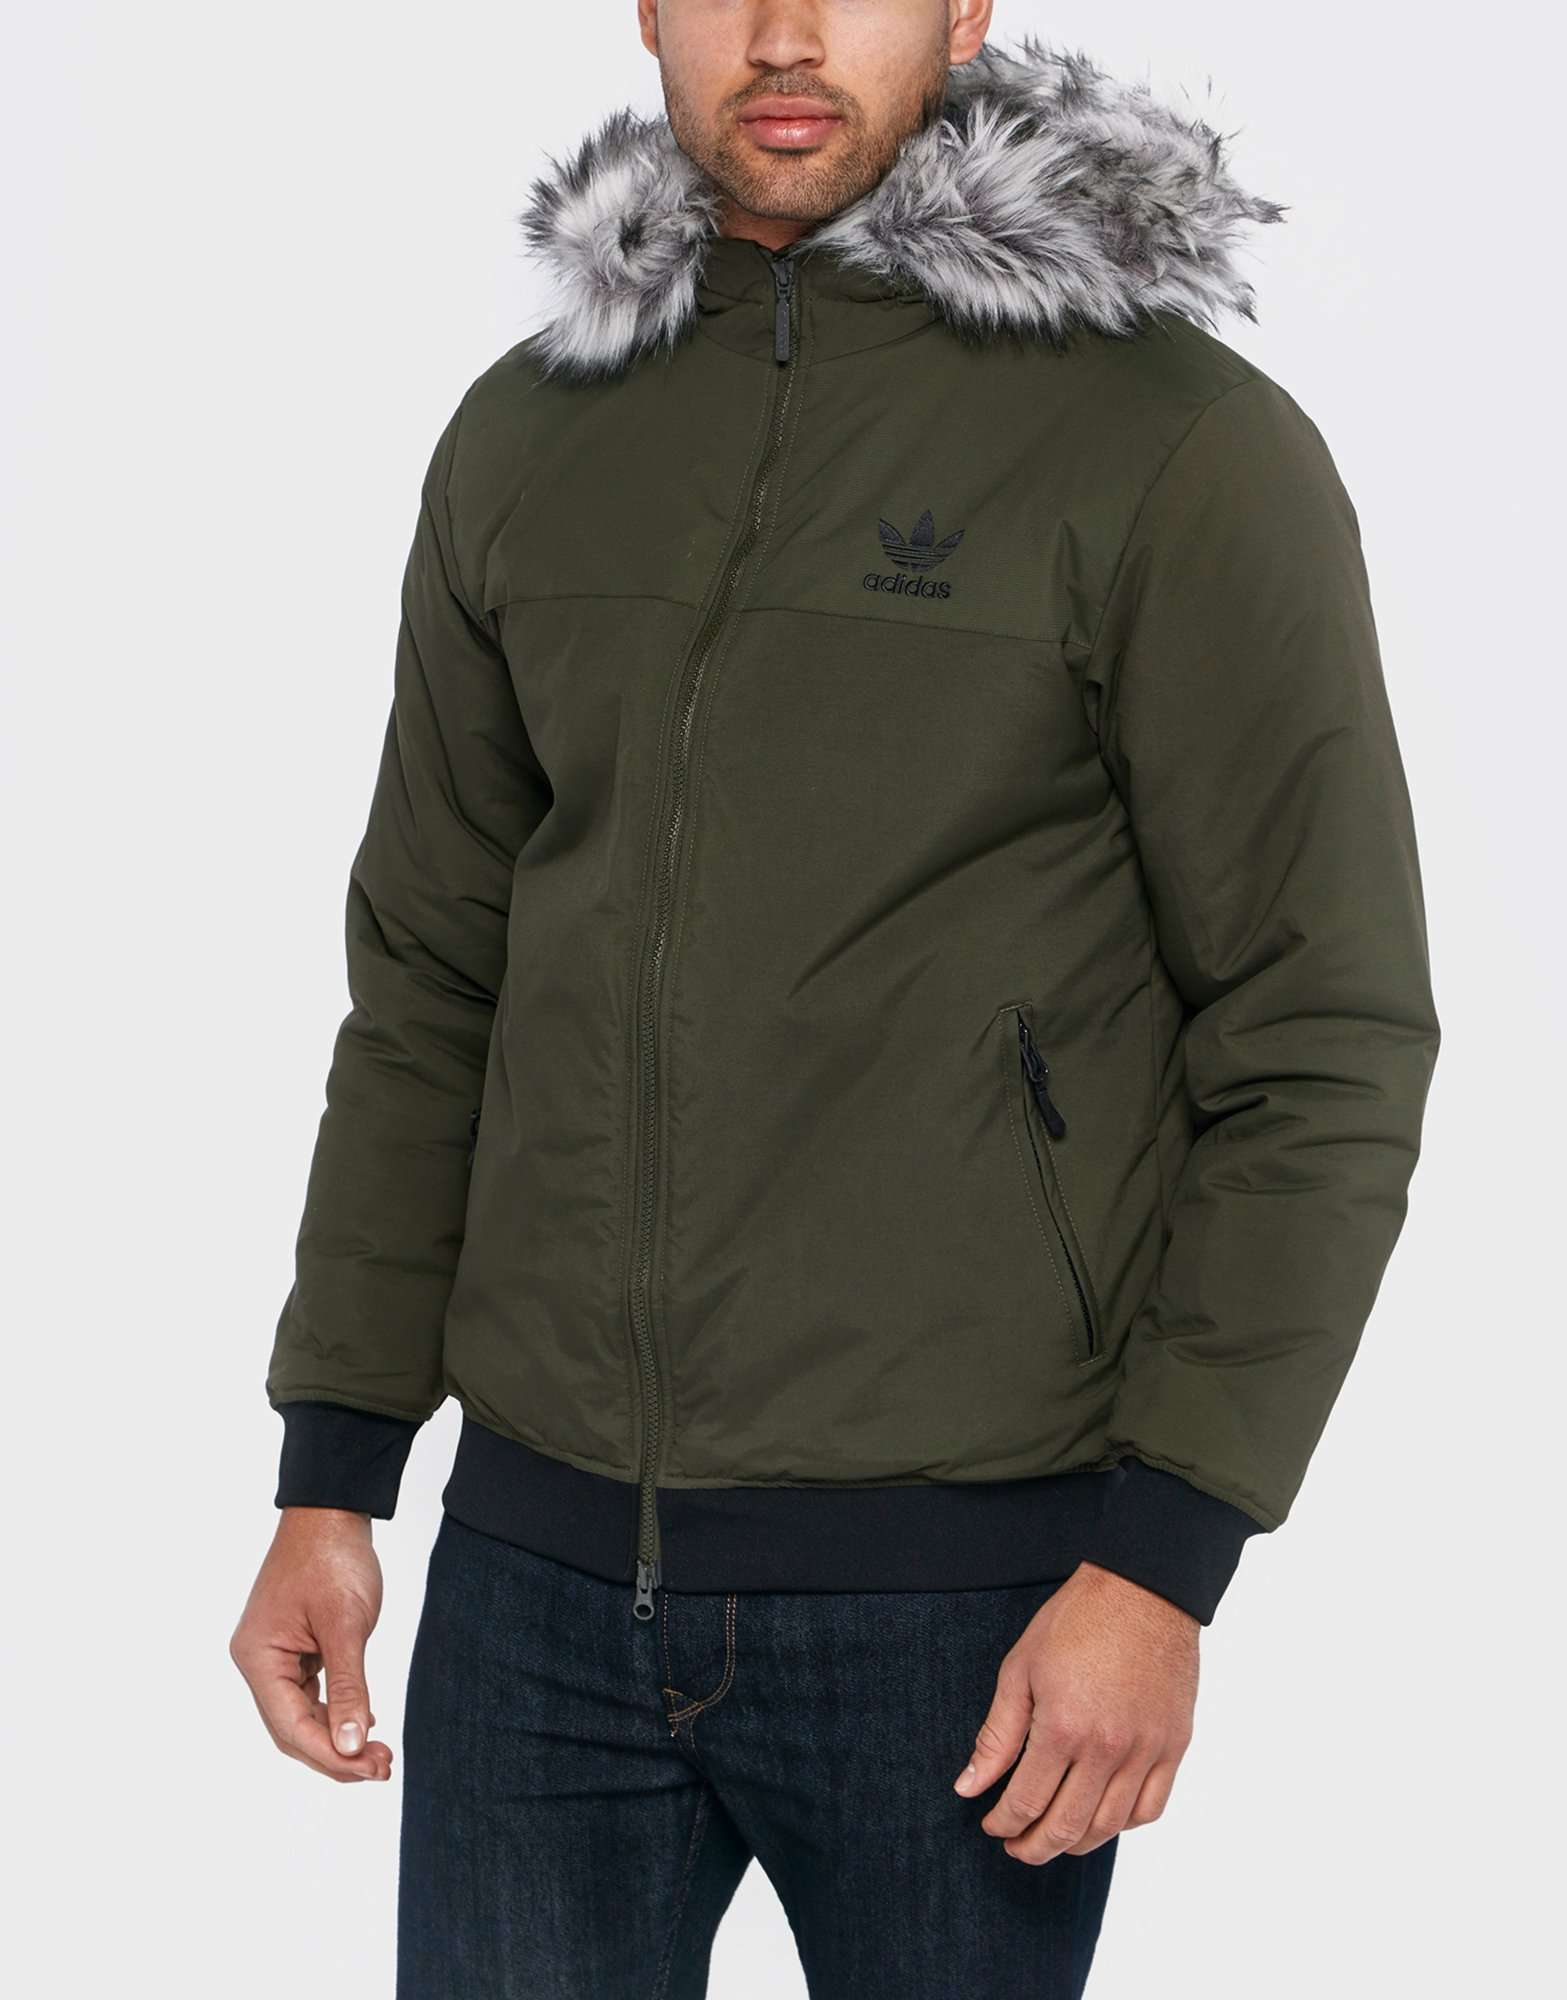 adidas Originals Trefoil Fur Parka Jacket | scotts Menswear